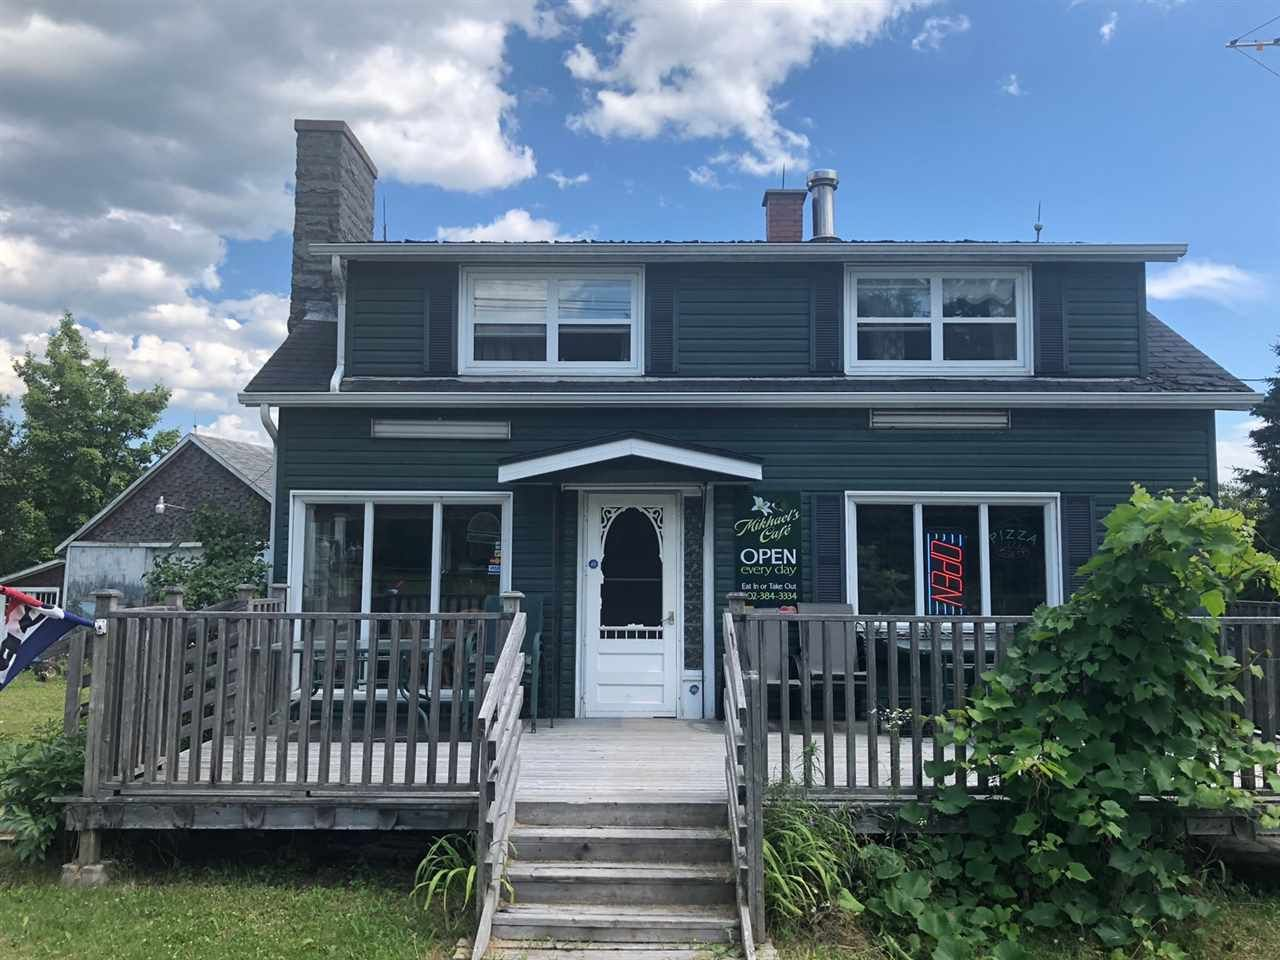 Main Photo: 12087 224 Highway in Middle Musquodoboit: 35-Halifax County East Residential for sale (Halifax-Dartmouth)  : MLS®# 202010266